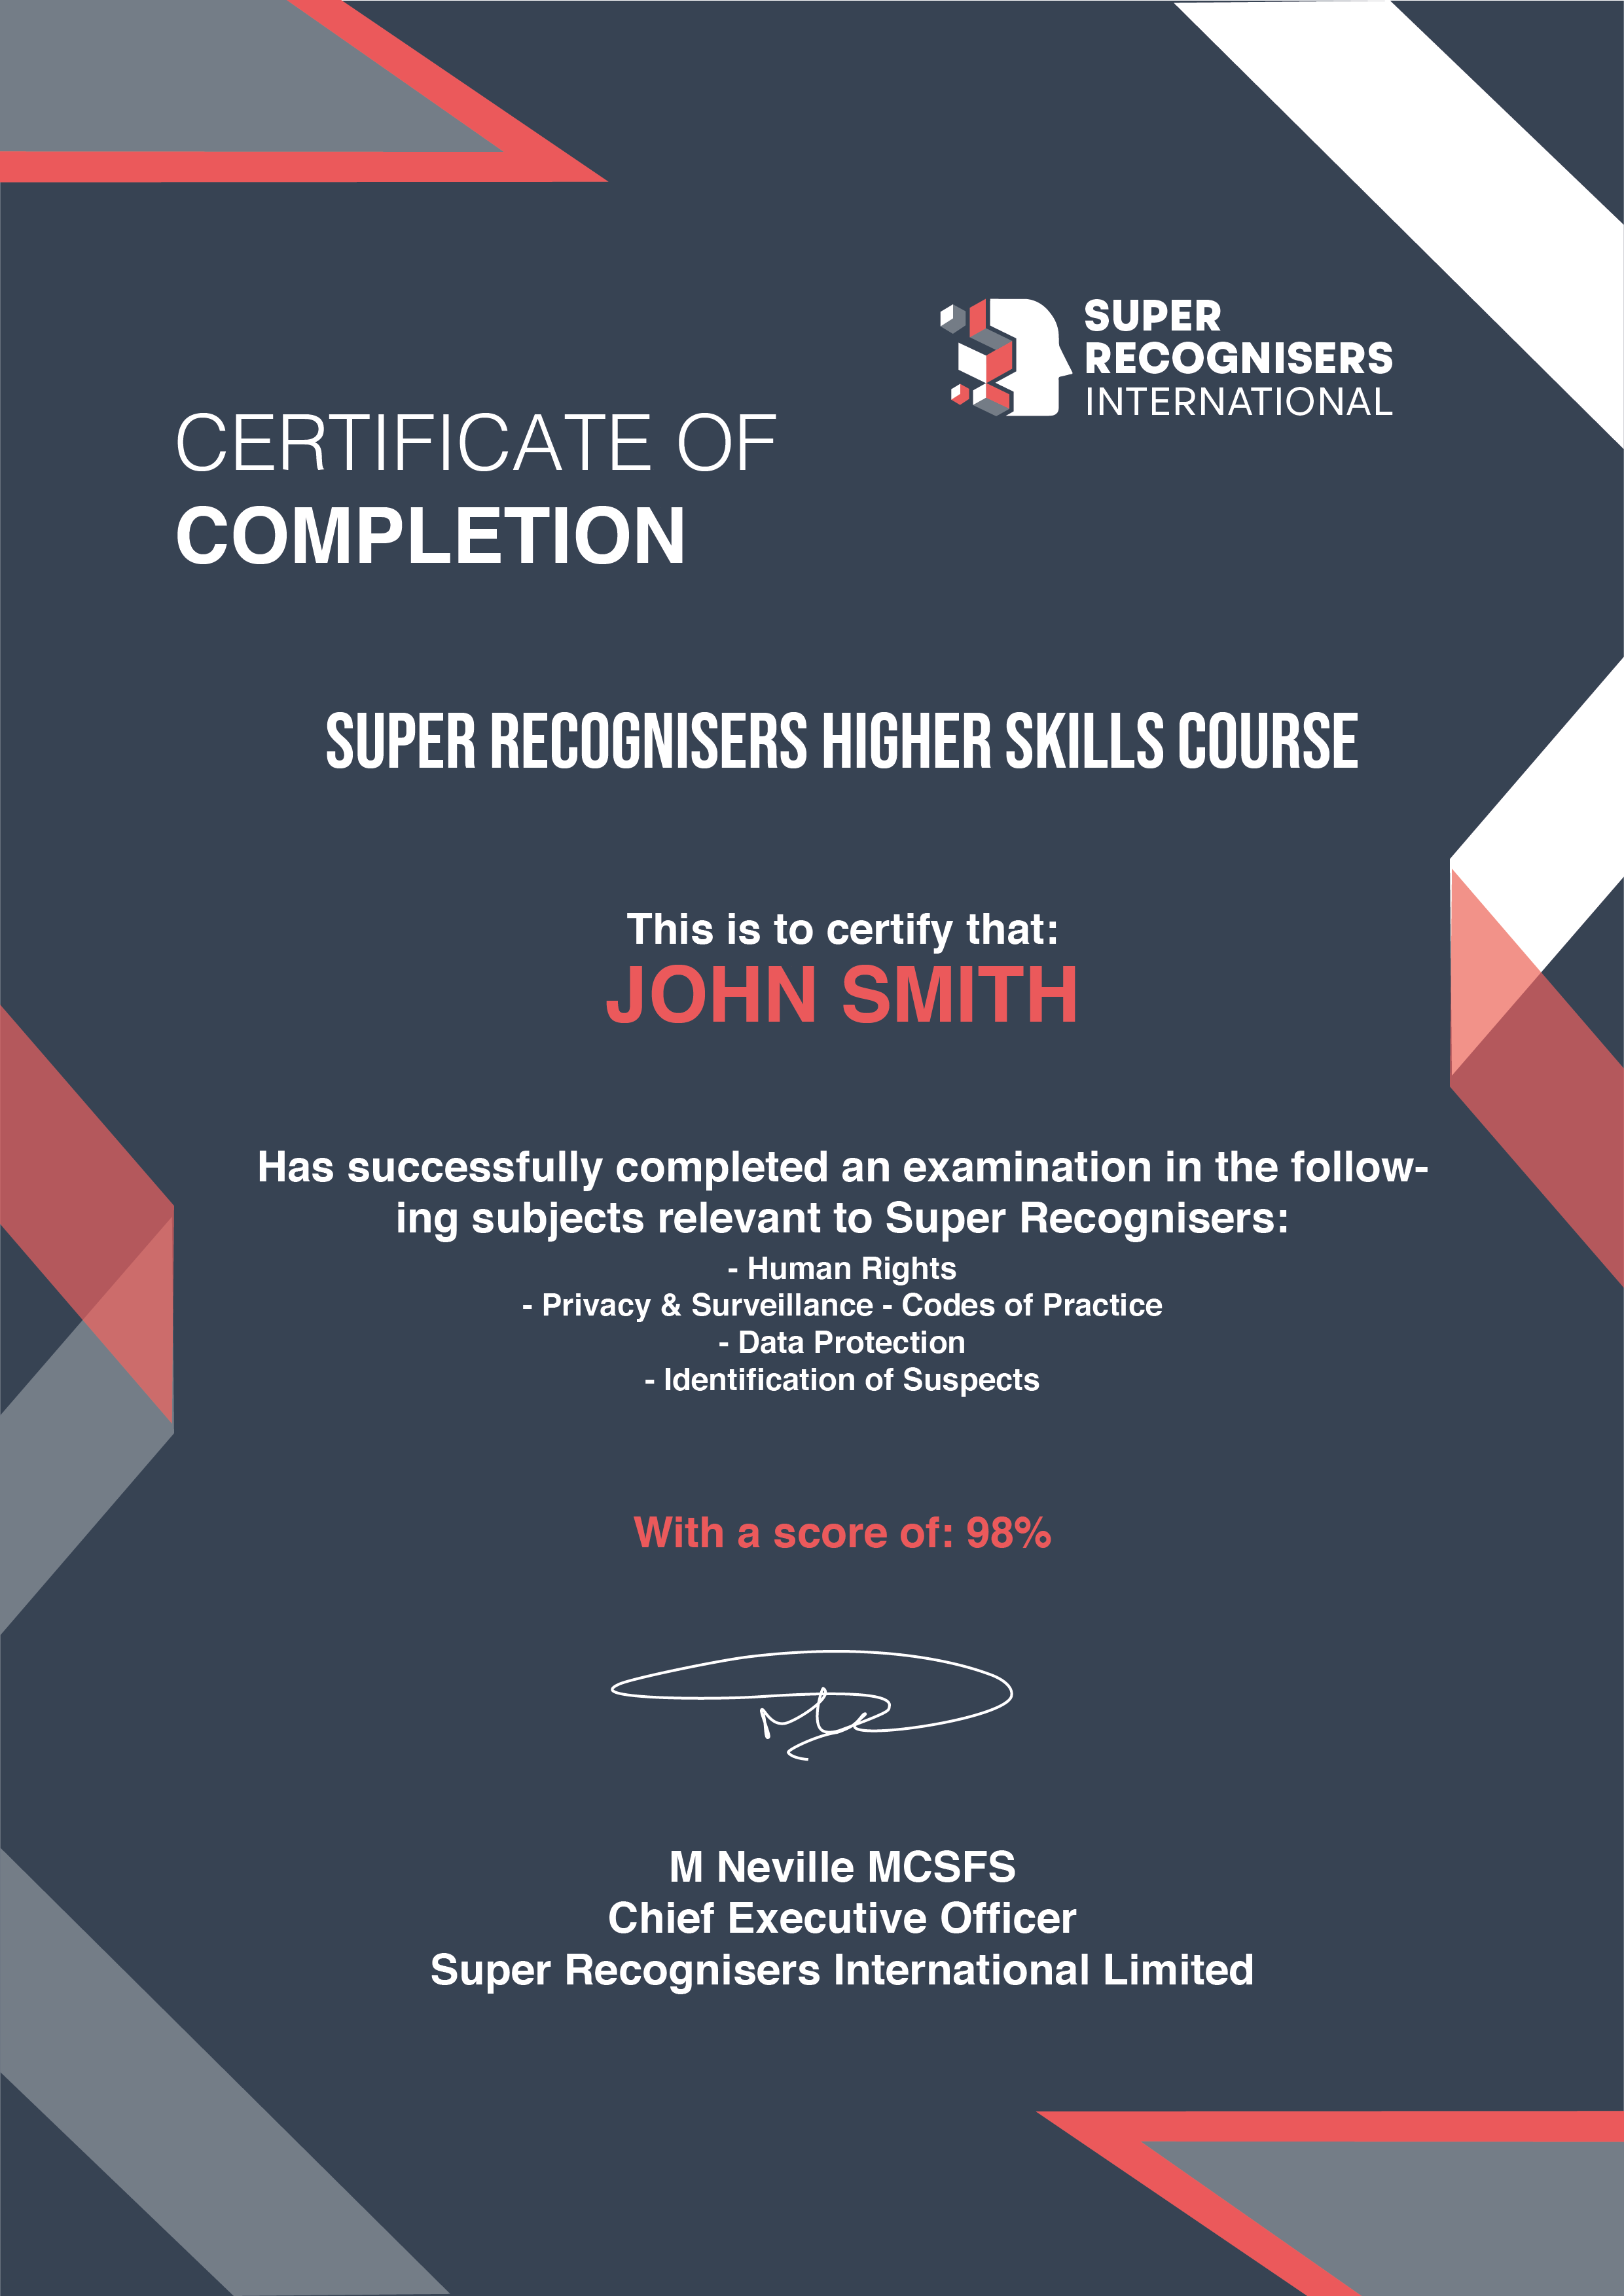 Specialised Pro Course Certificate Super Recognisers International - Kent, England - Main background